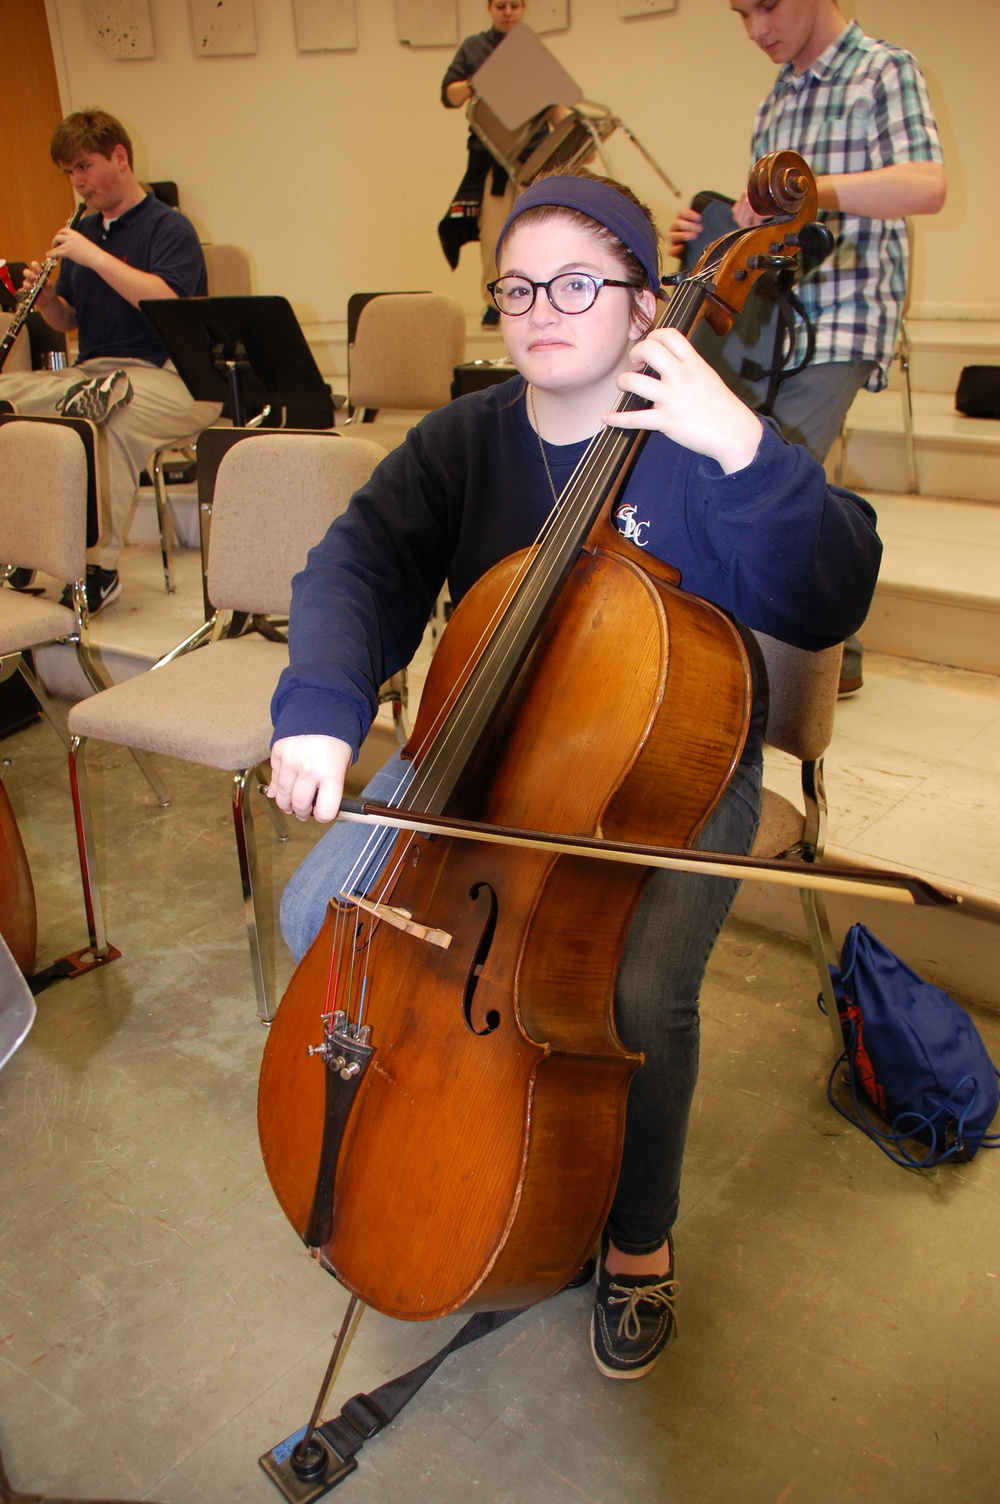 Hannah Guillory, Cellist for the Symphonic Youth Orchestra